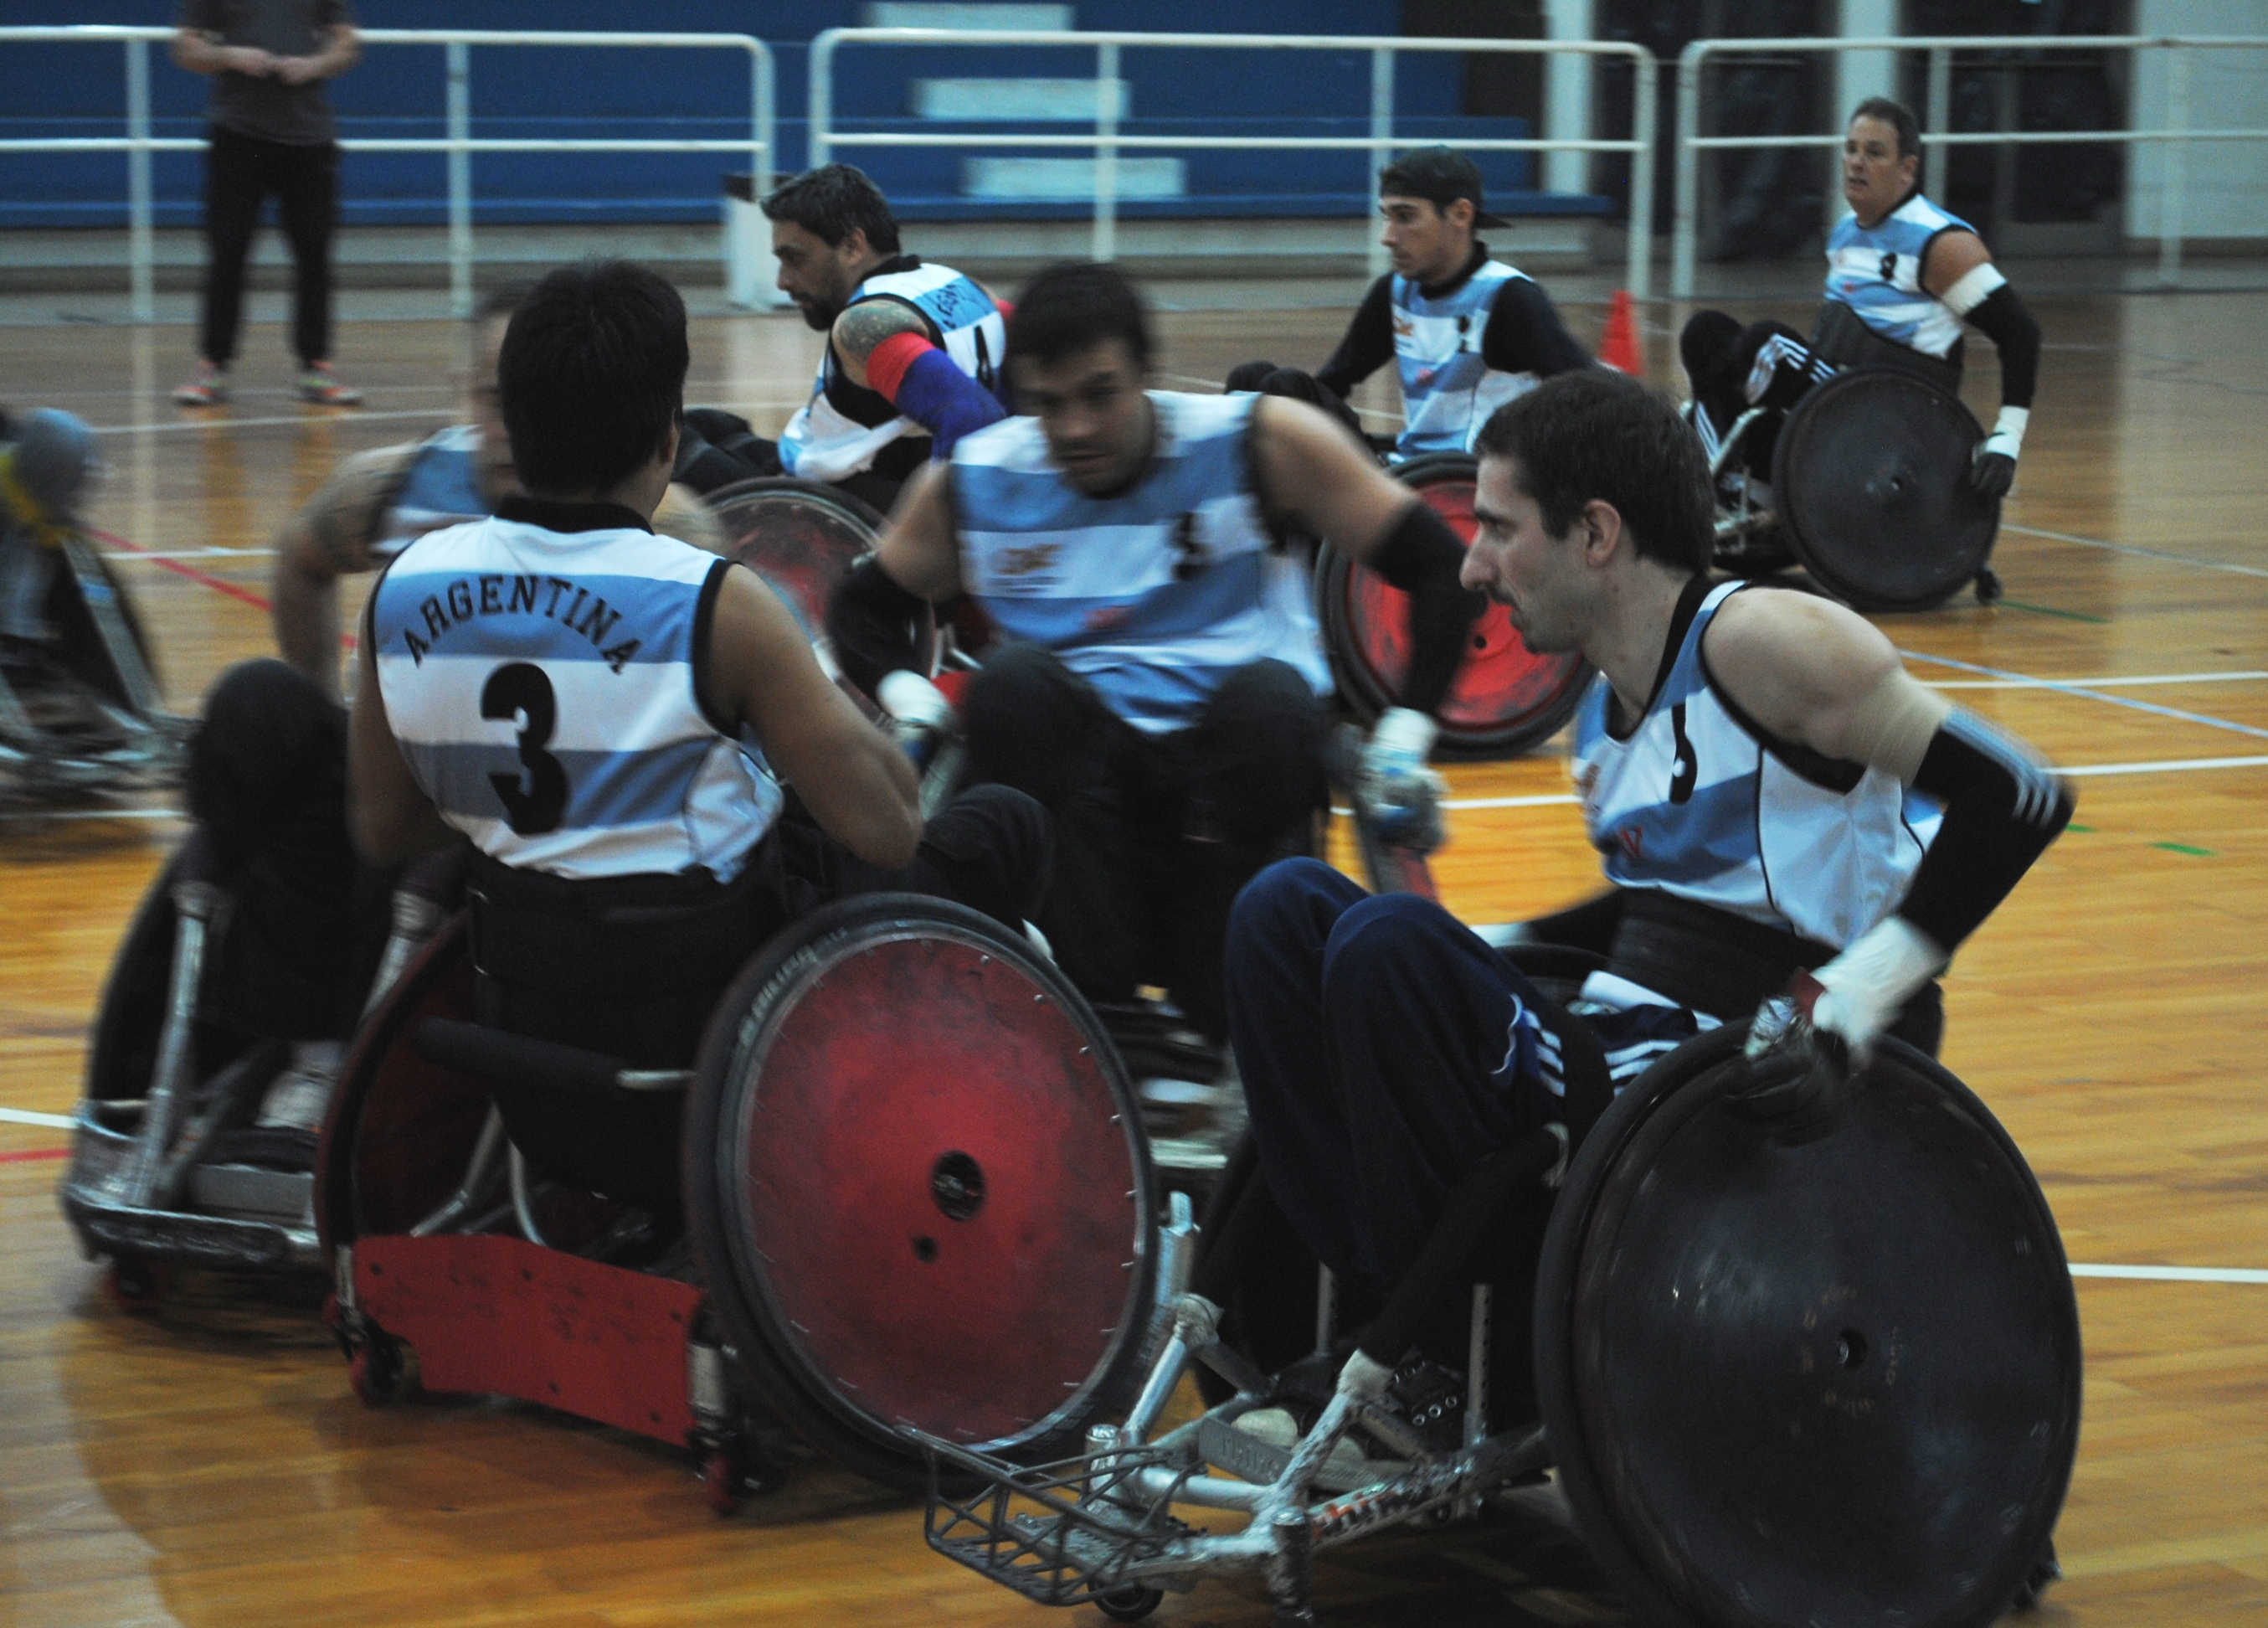 Quad rugby: Argentina superó a Chile con comodidad